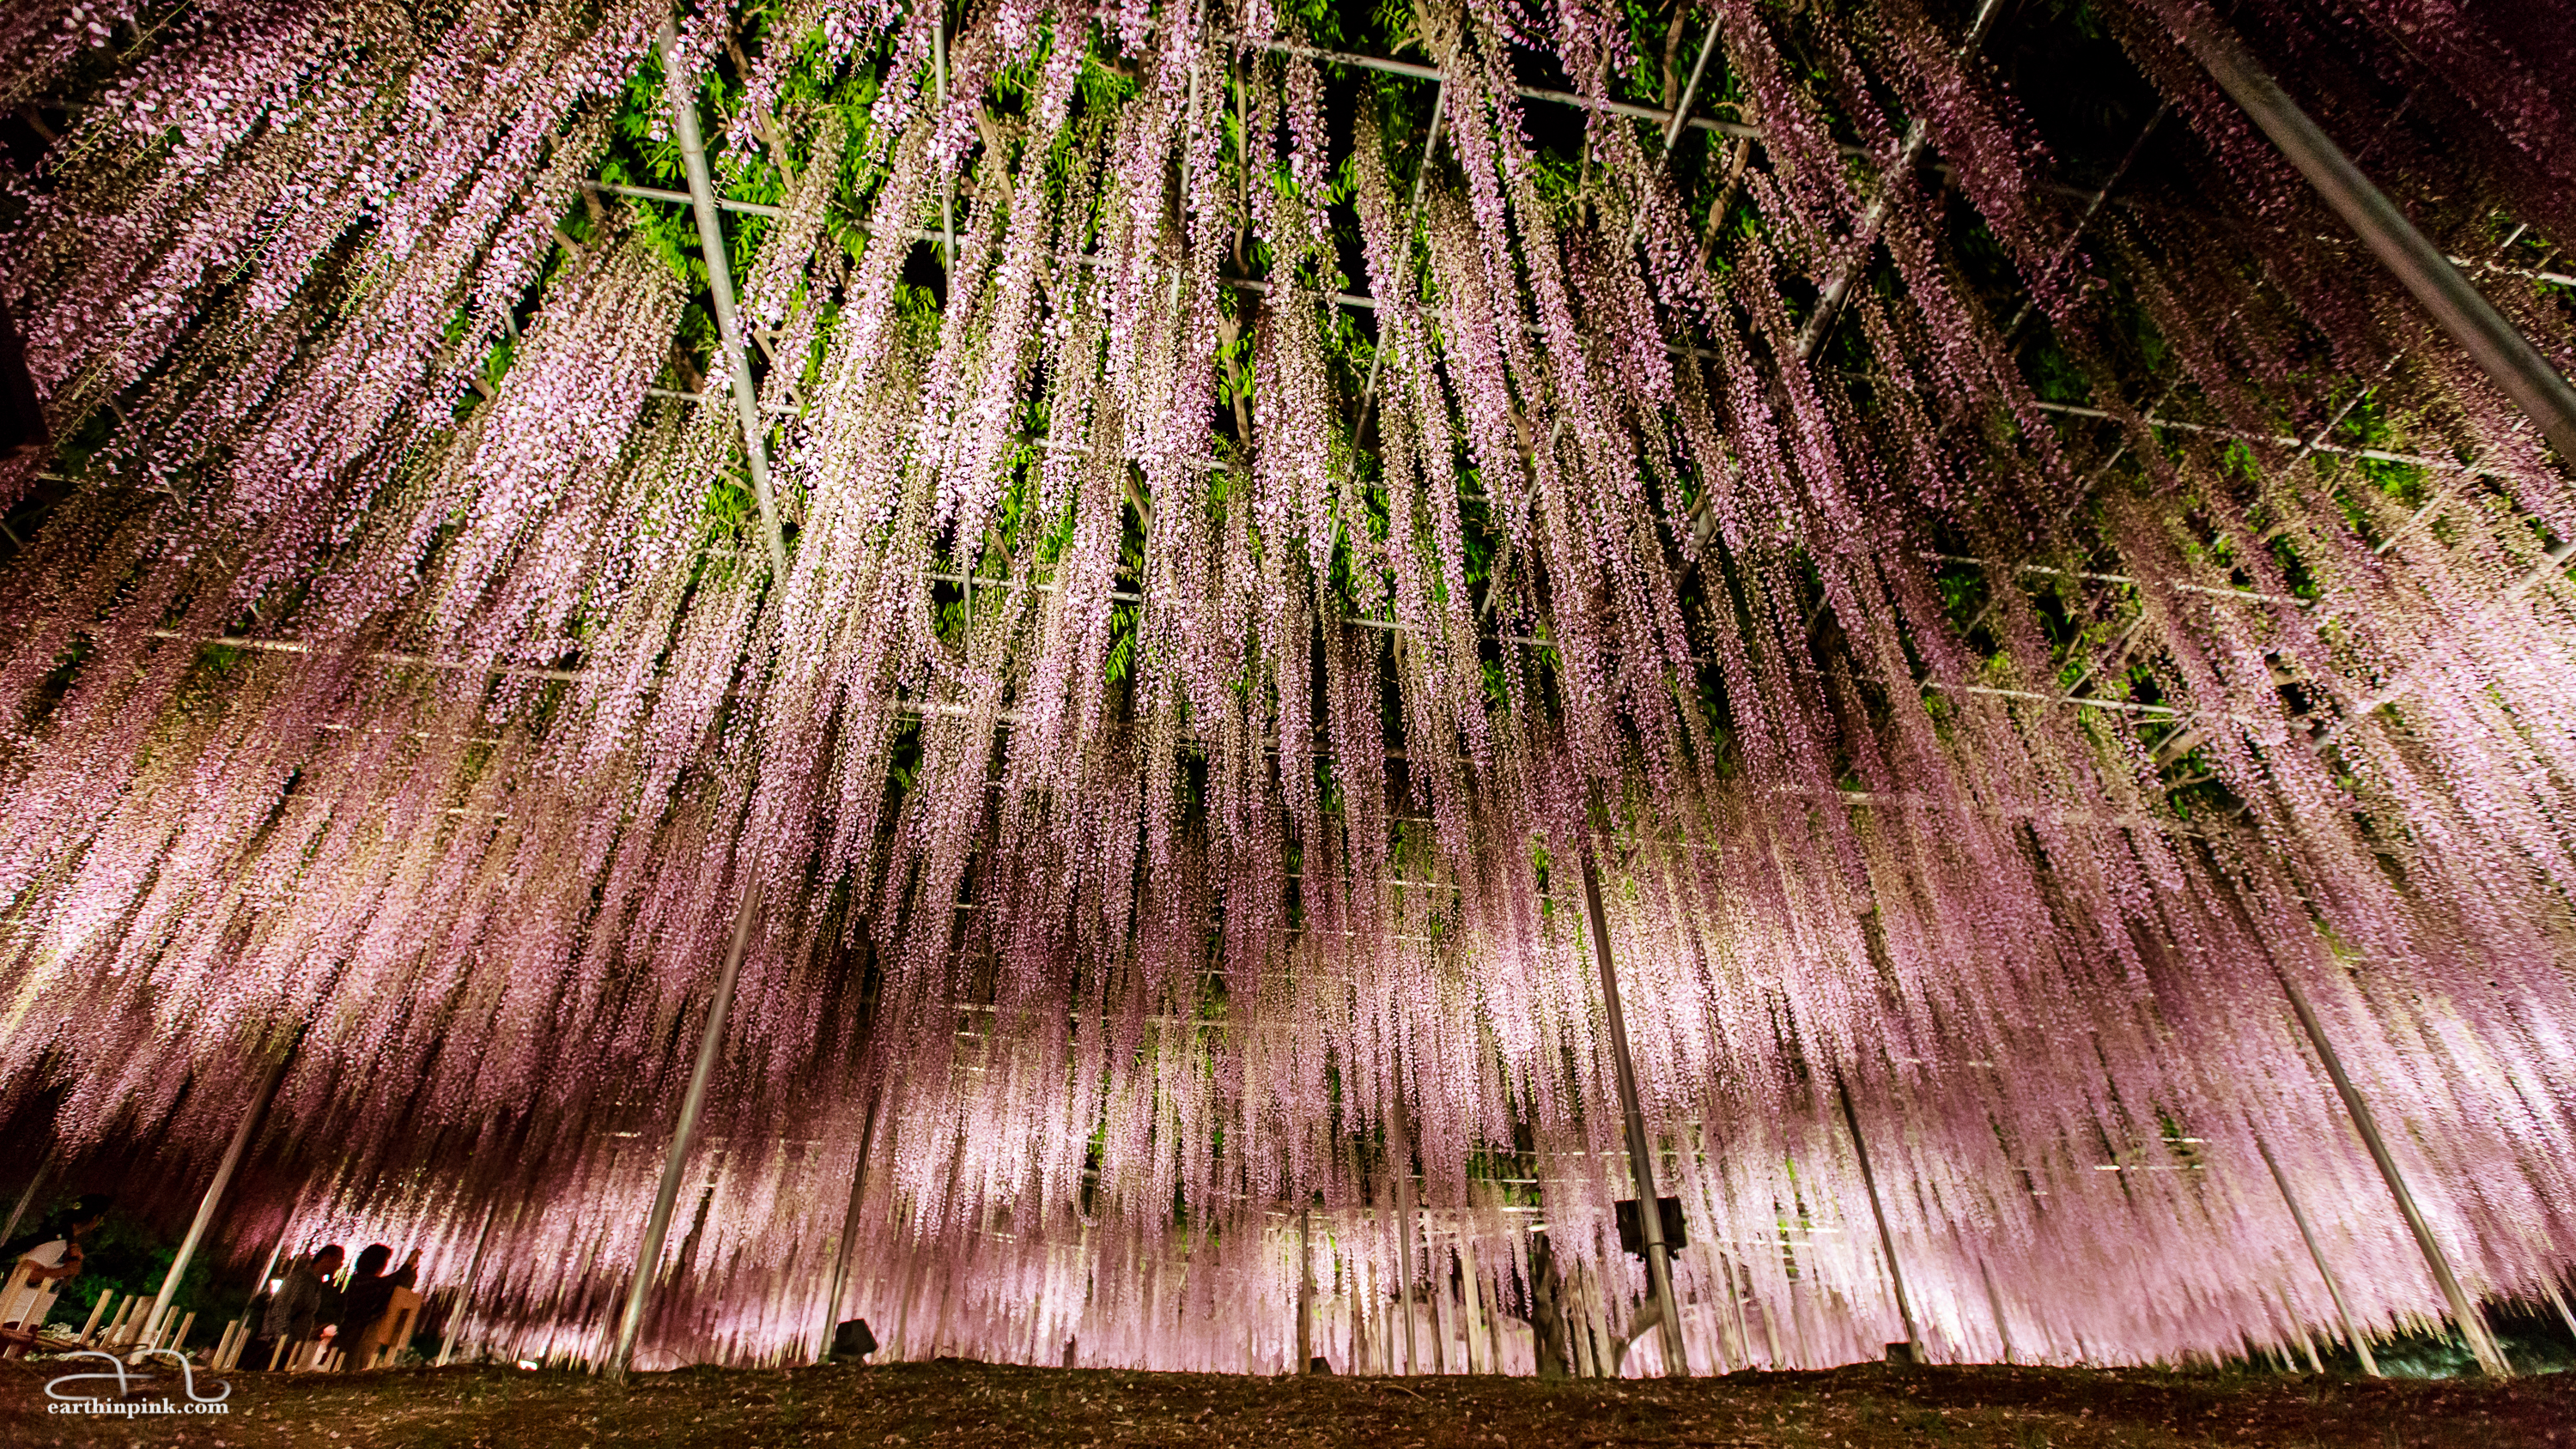 Night illumination of the wisteria trees at Ashikaga flower park, Tochigi, creates the impression of an aurora borealis made out of flowers.